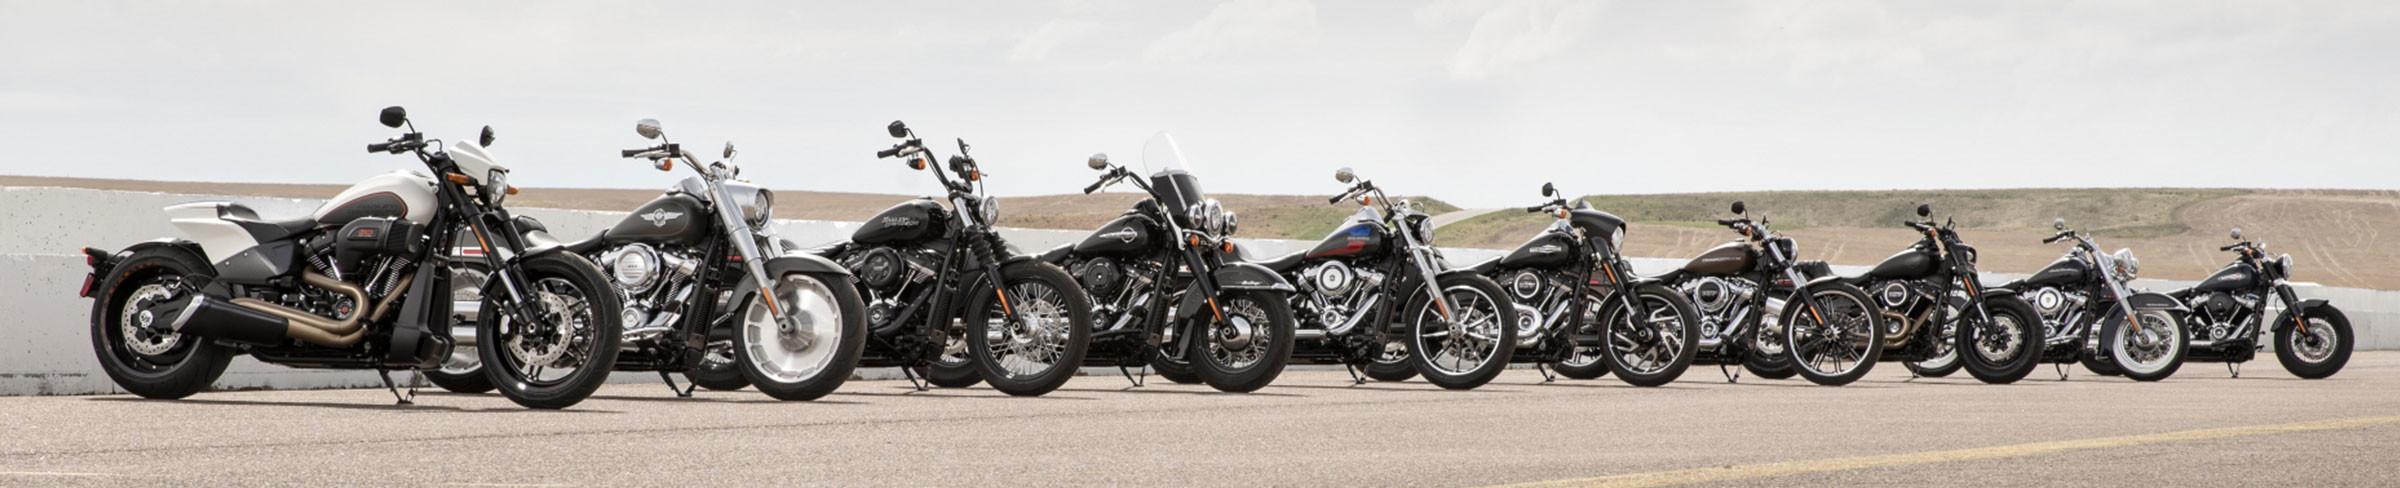 All Motorcycles for sale at A.D. Farrow Co Harley-Davidson® in Ohio